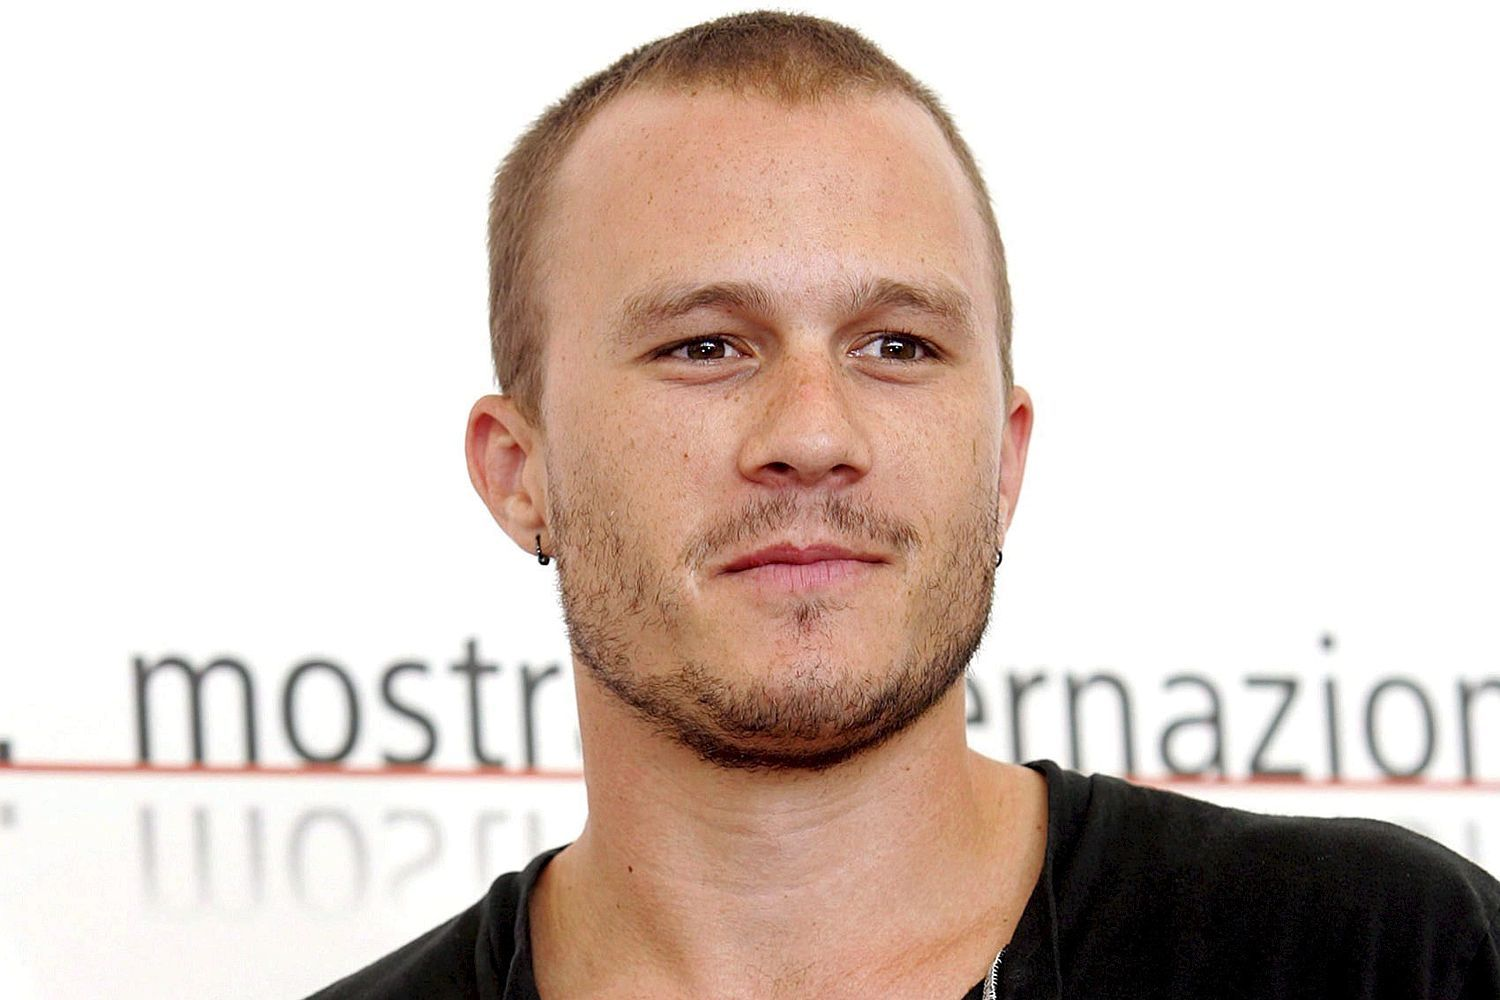 How did Heath Ledger die, how old was he and what were his biggest movies?